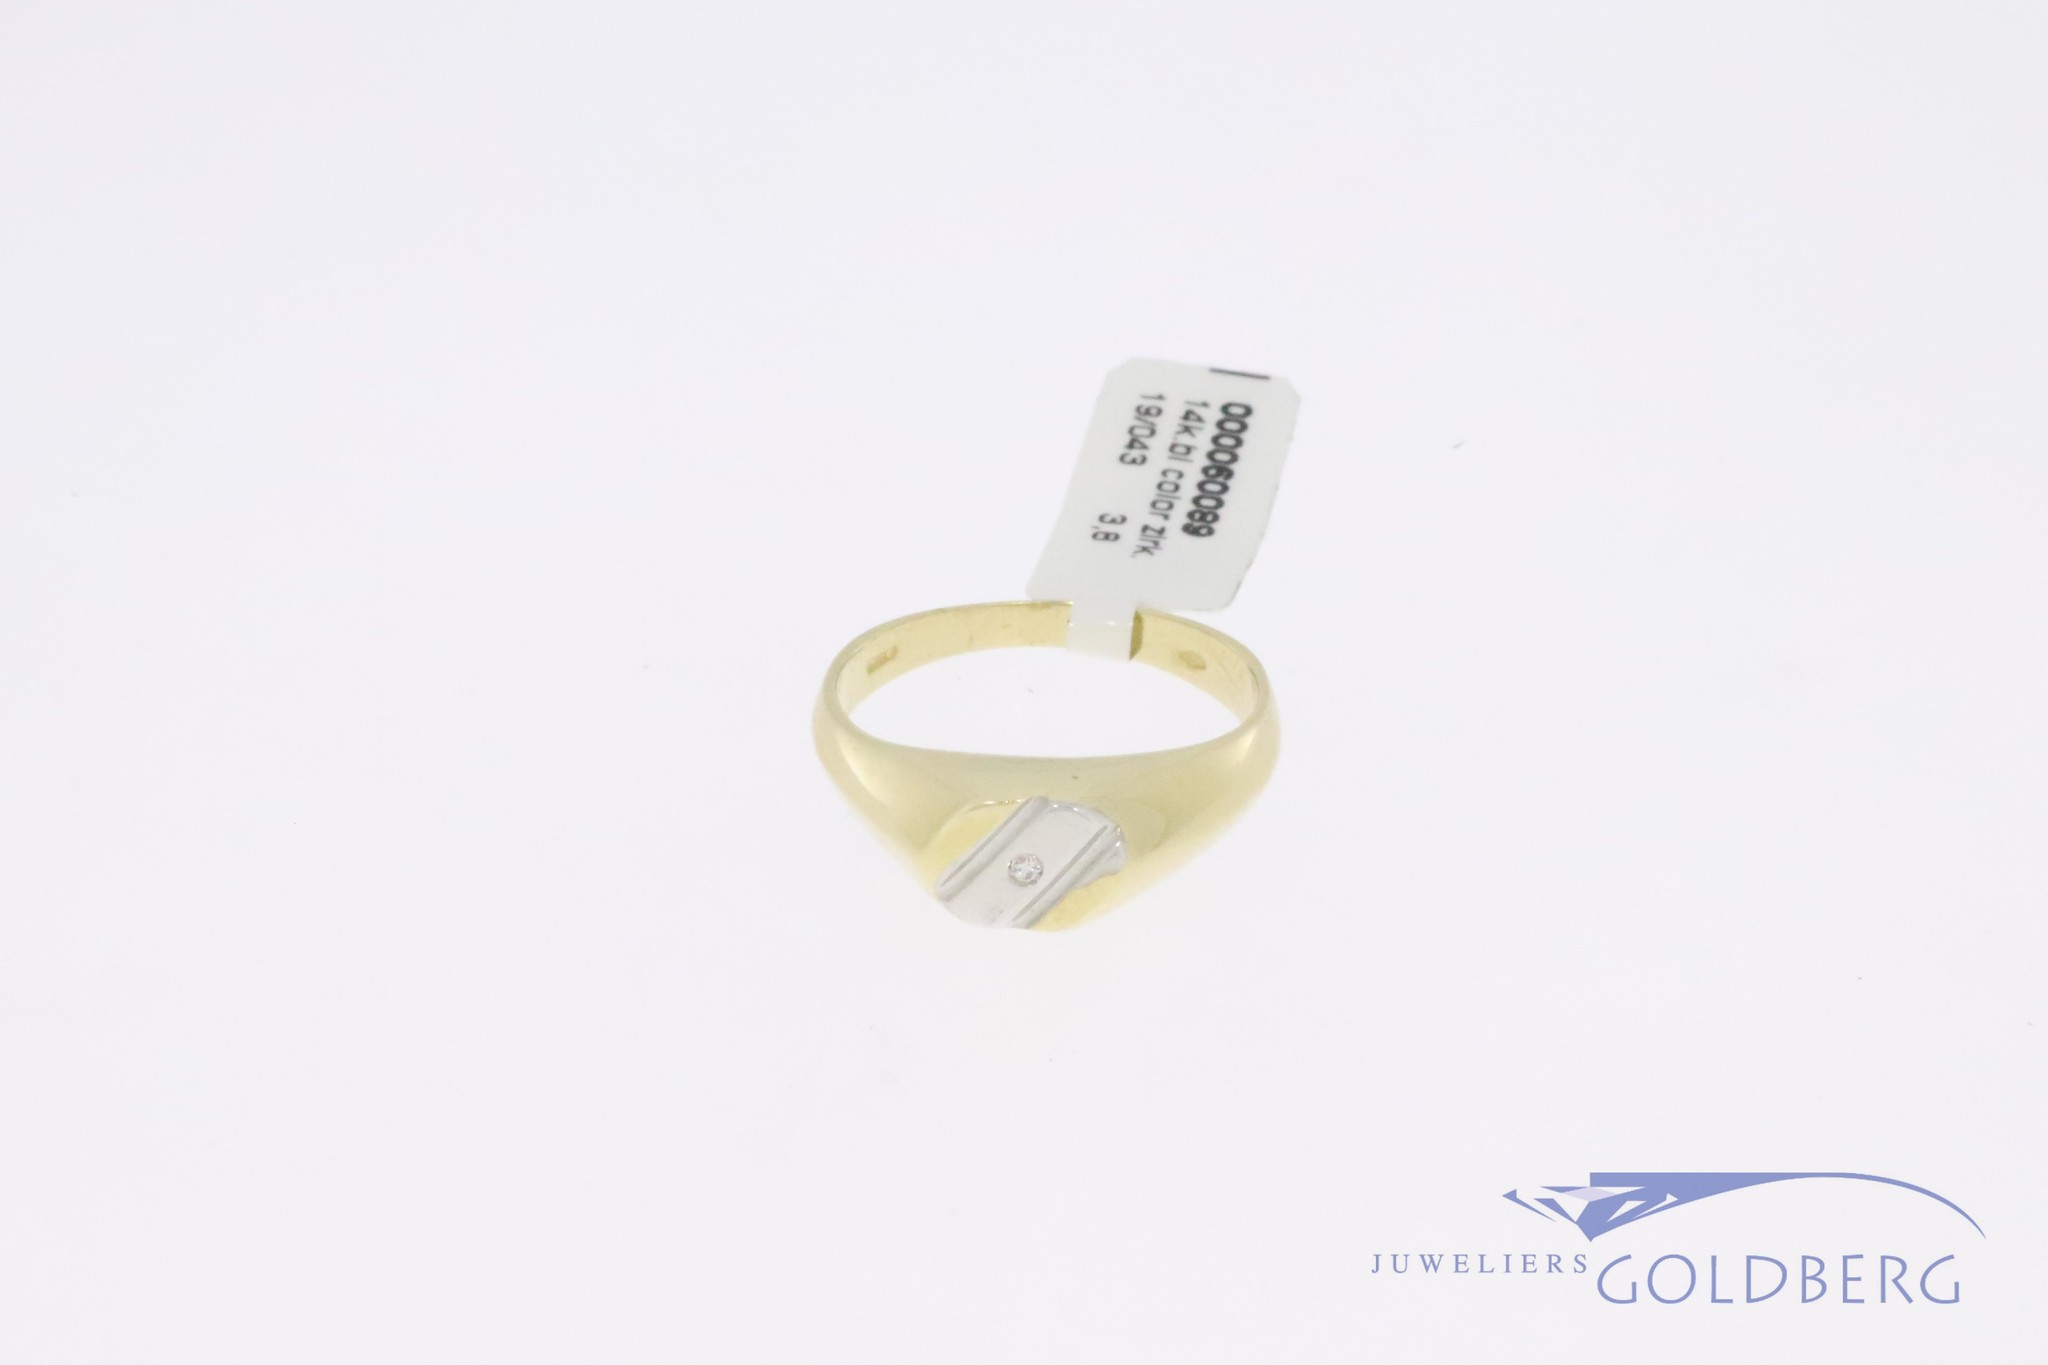 14k gold bicolor retro signet ring/pink ring ('80s-'90s style) with zirconia